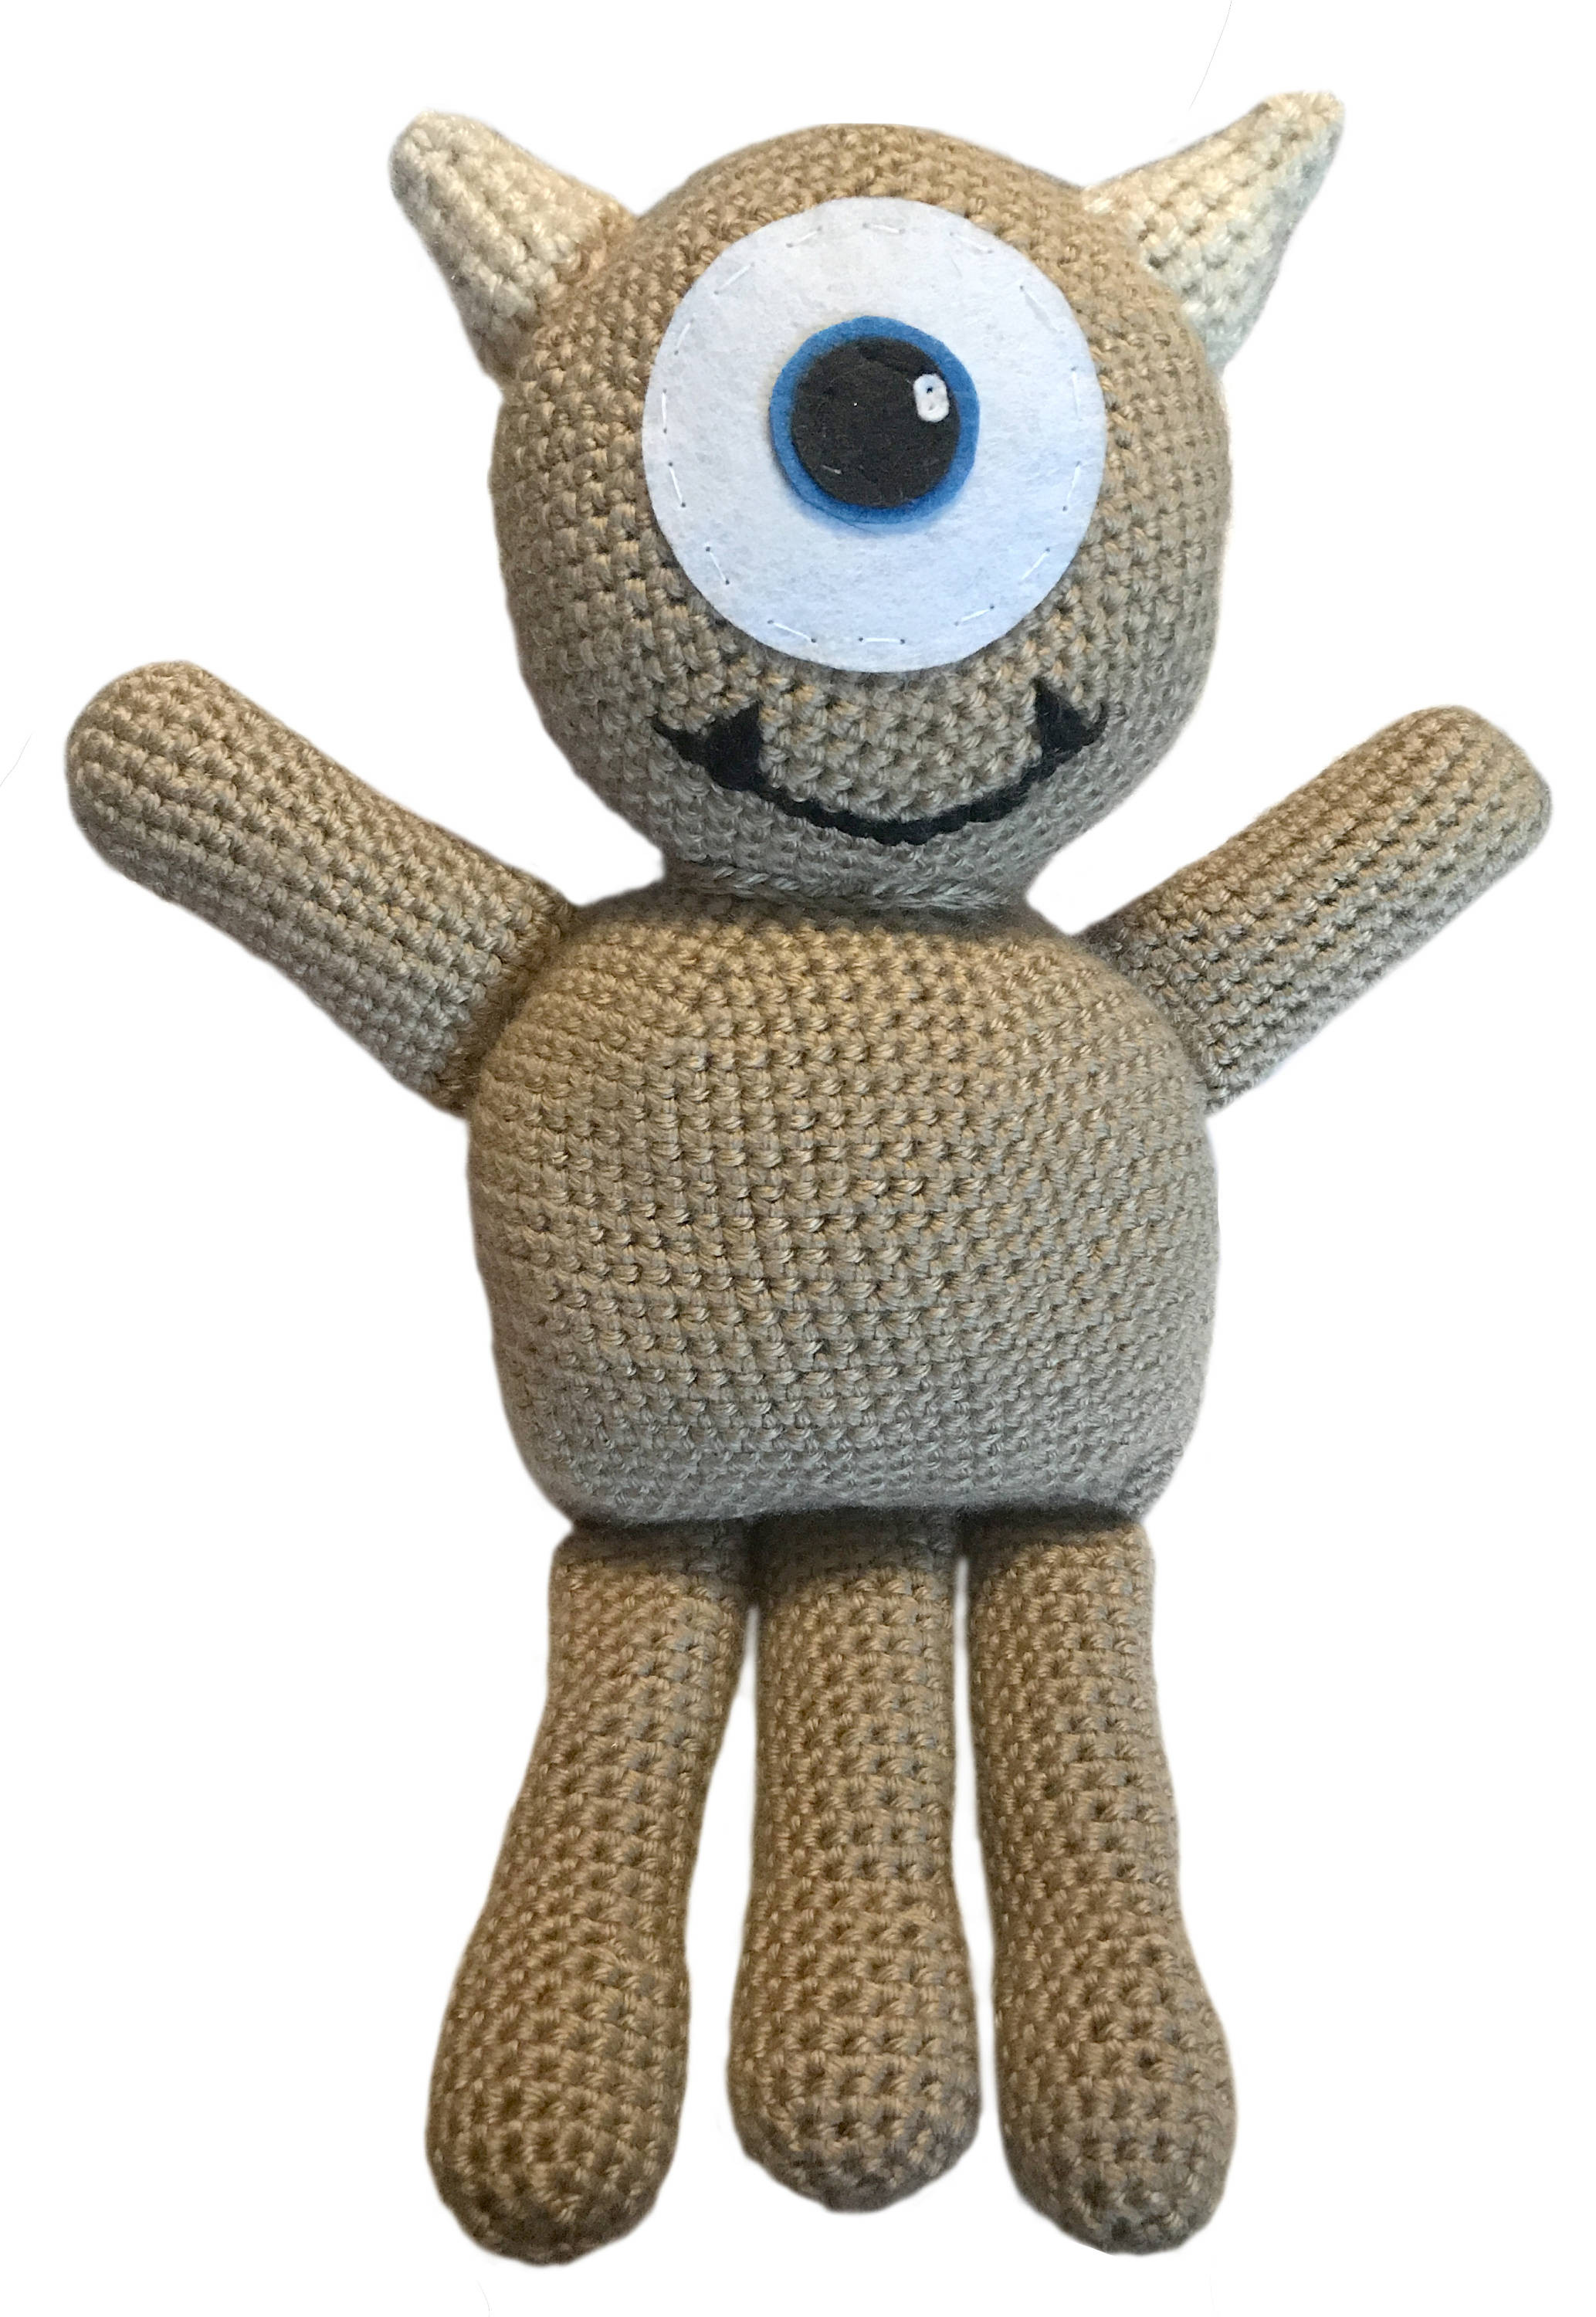 Elegant Little Mikey From Monsters Inc Crochet Pattern Only Mikey Crochet Of New 49 Images Mikey Crochet